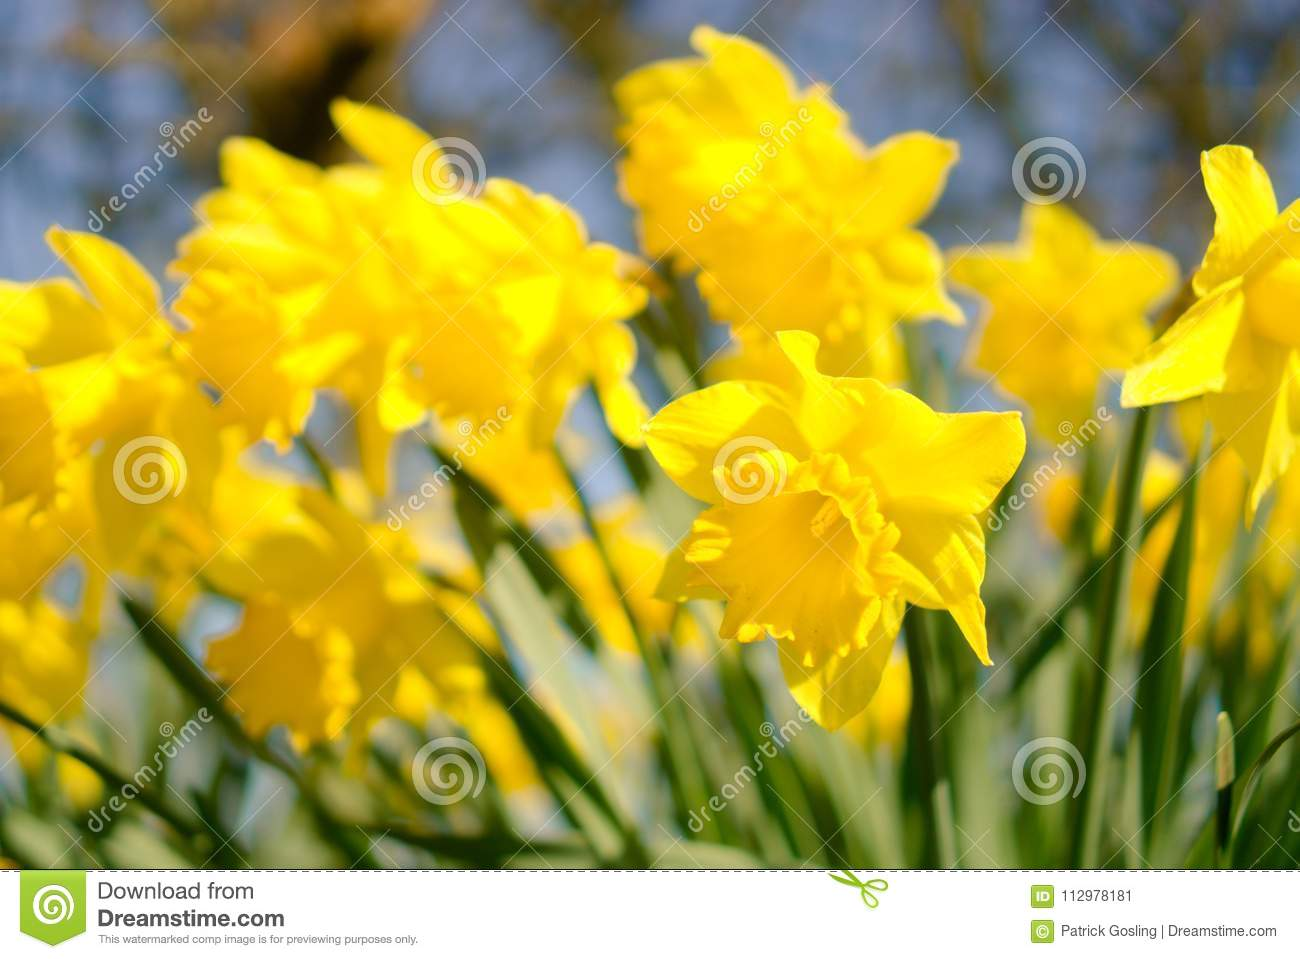 Daffodils Flowering In Spring Stock Image Image Of Trumpet